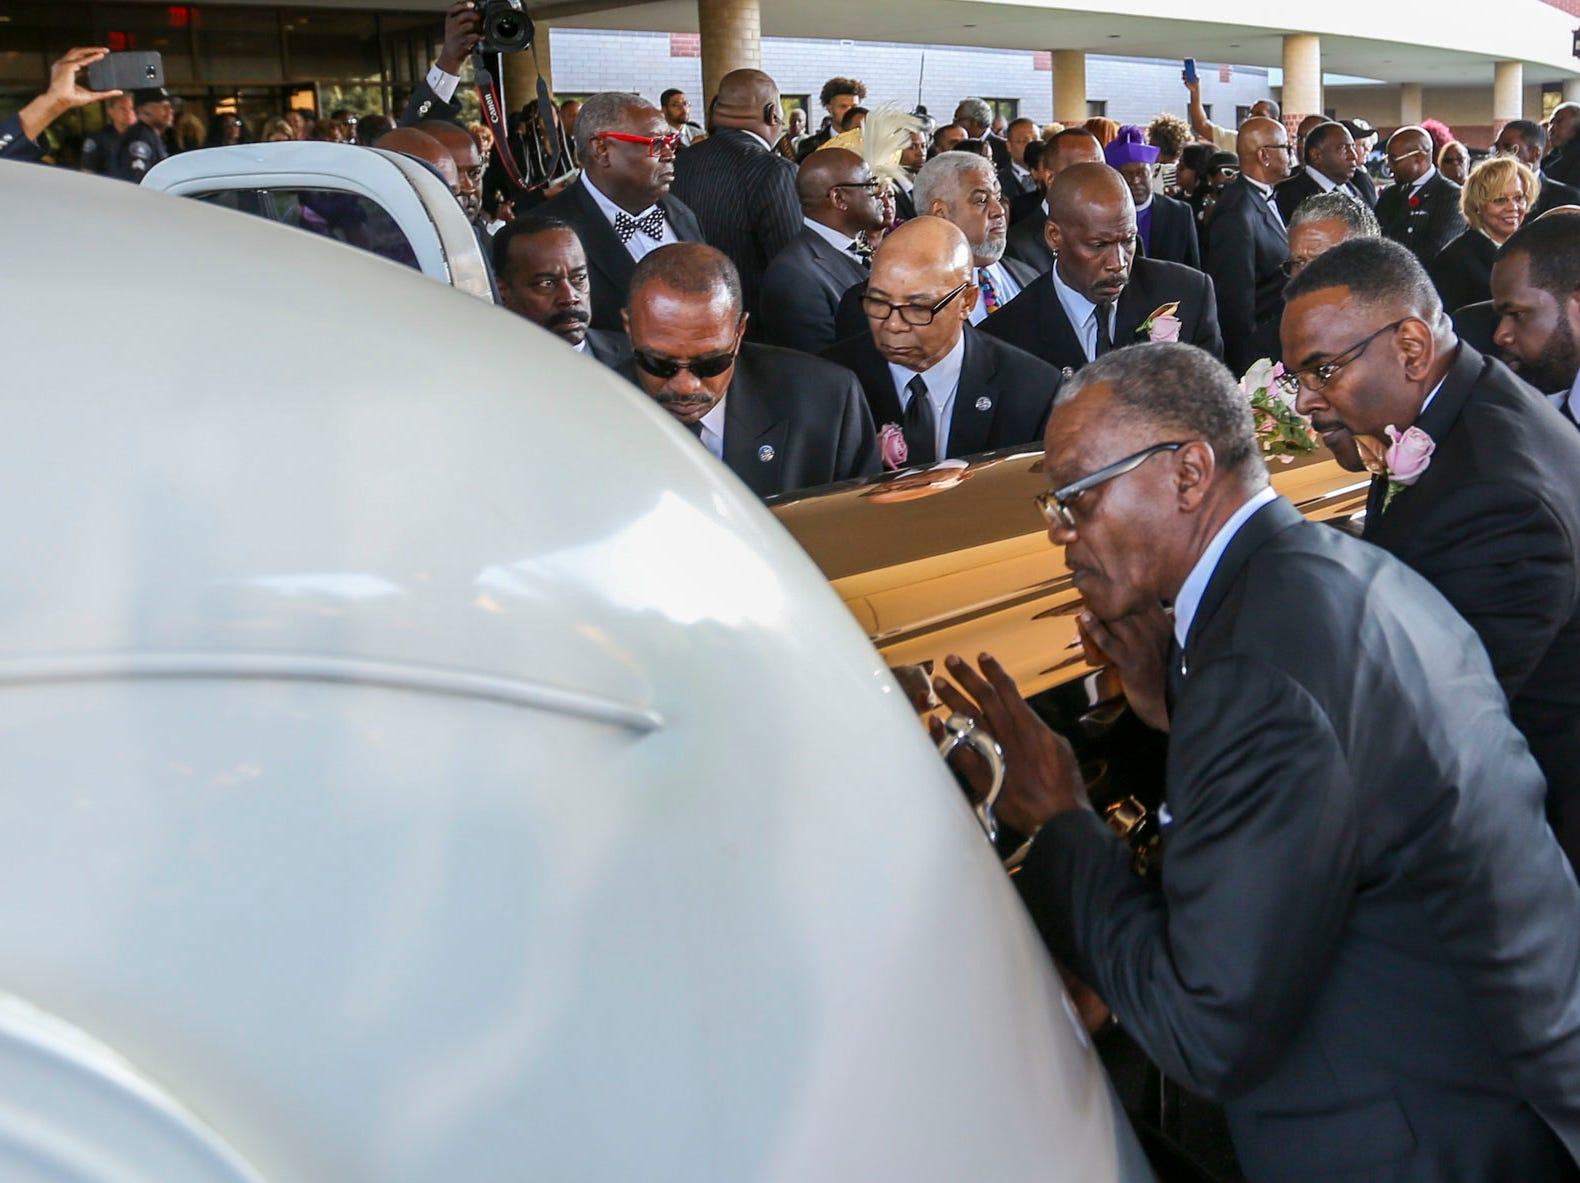 Aretha Franklin's casket is placed in a hearse after her funeral service at Greater Grace Temple in Detroit, on Friday, Aug. 31, 2018.